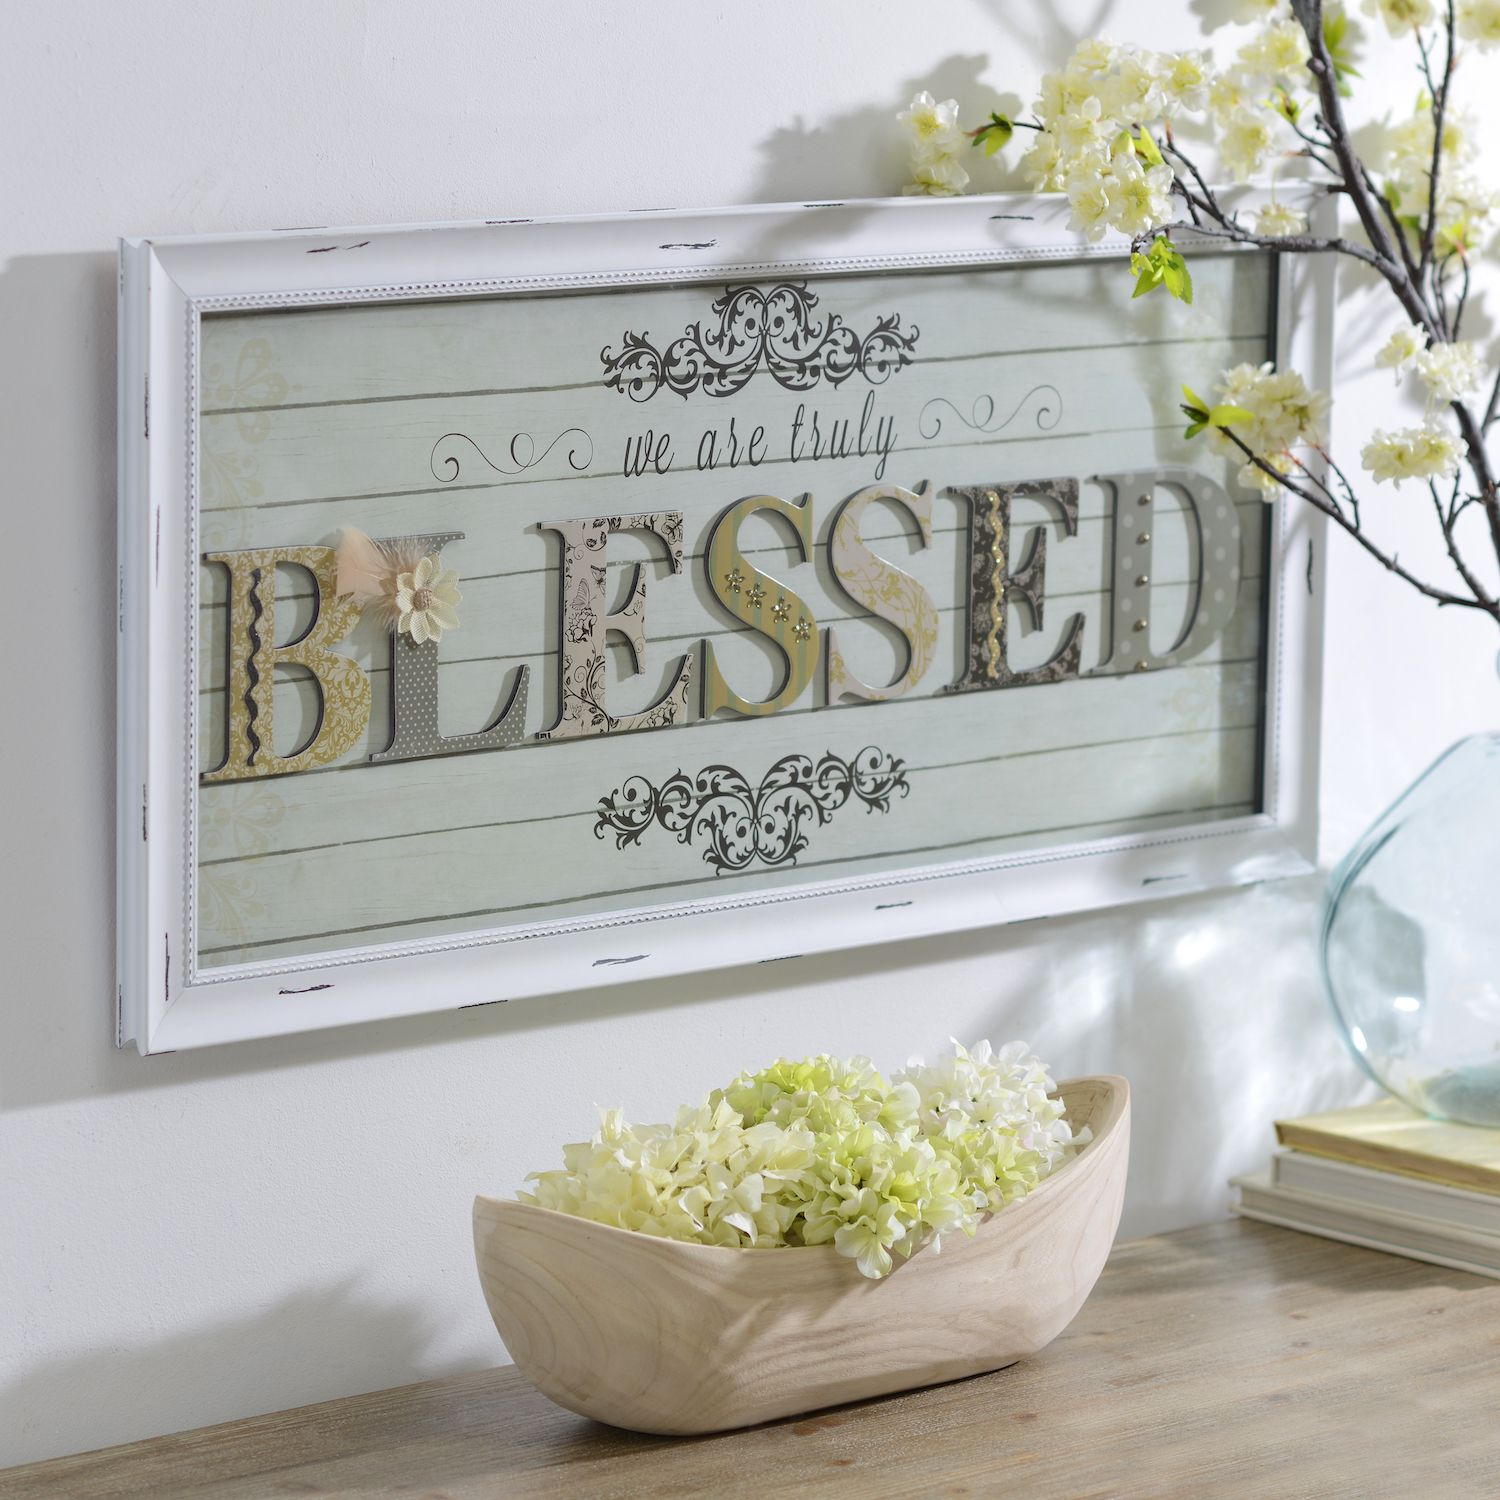 Find Gifts They Ll Love At Kirkland S That Provide Year Around Reminders Of Strong Faith The We Are Truly Blessed Shadowbox Is A Great Gift Adds